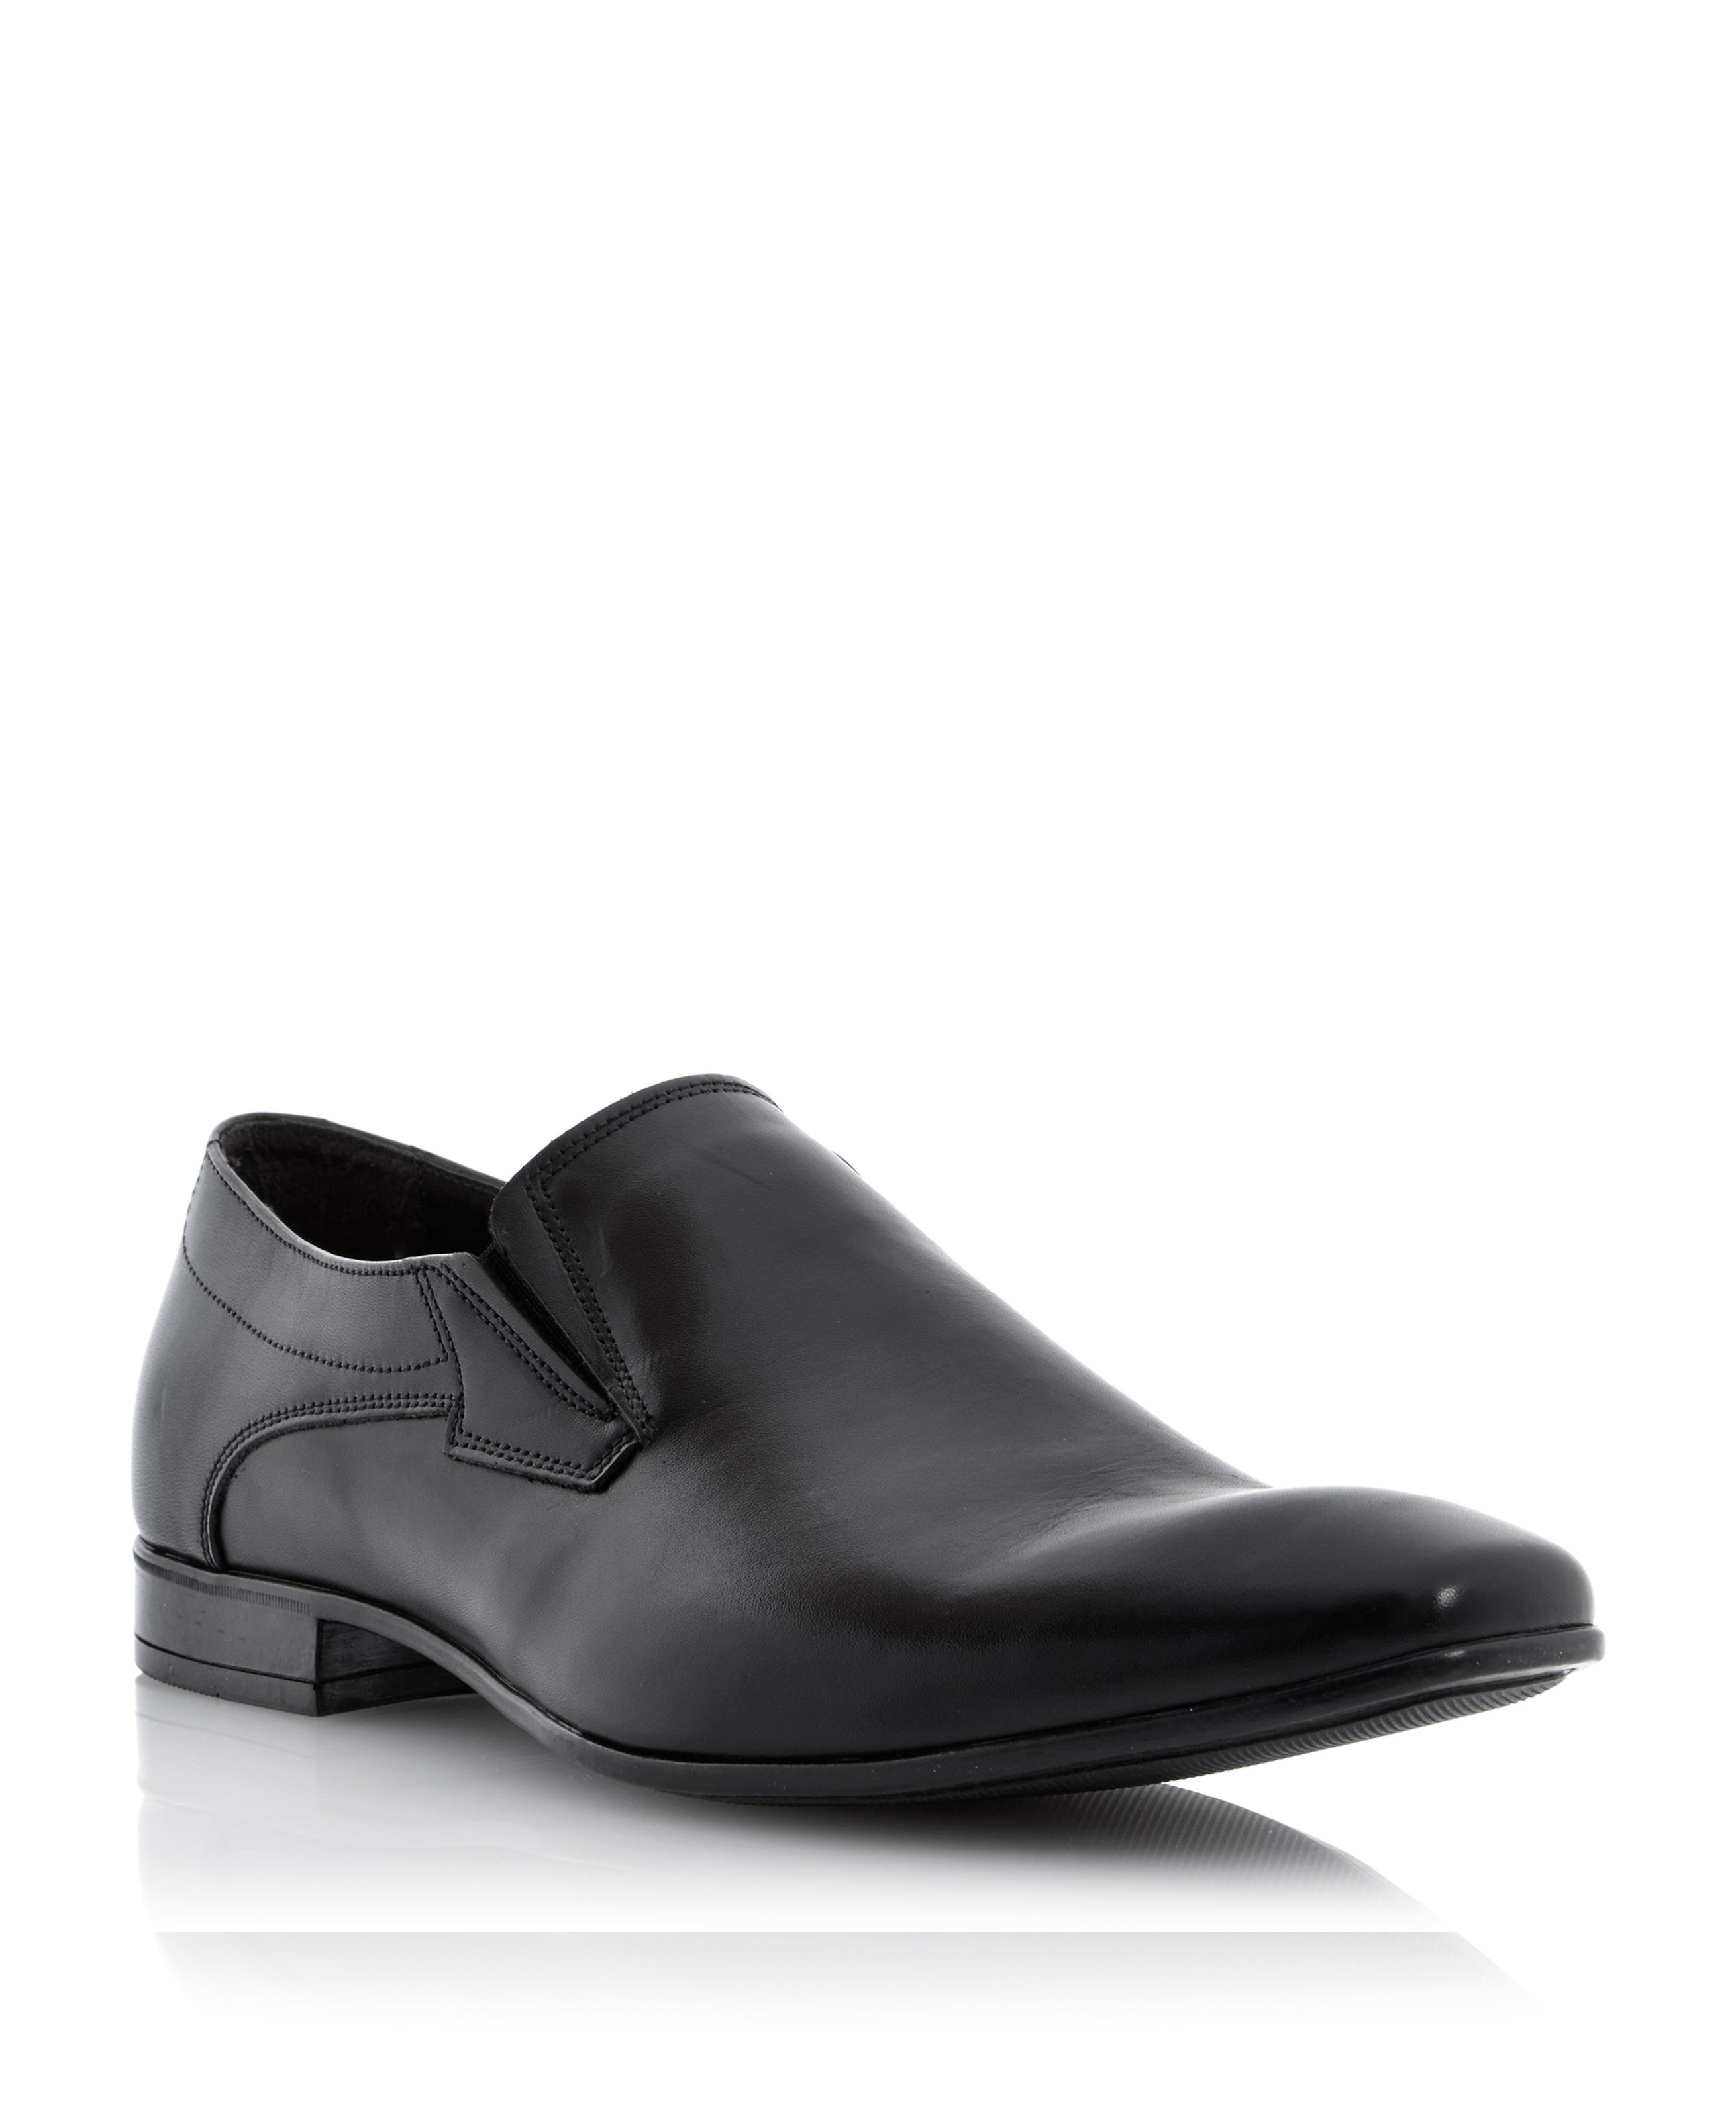 Redford elasticated plain vamp 1458 shoes